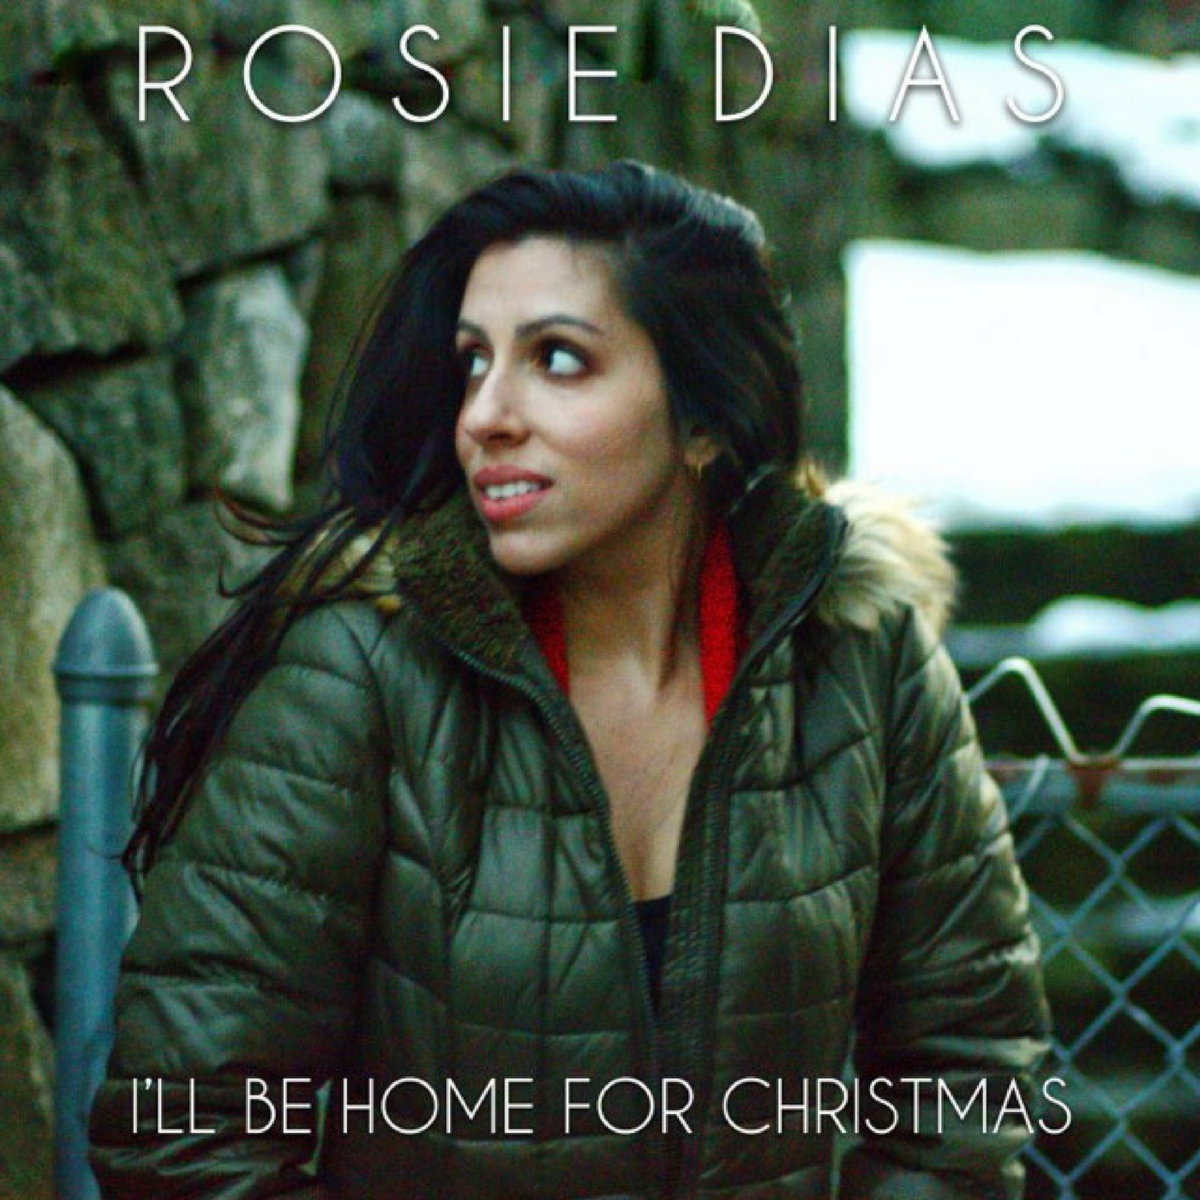 Home By Christmas.I Ll Be Home For Christmas Single Rosie Dias